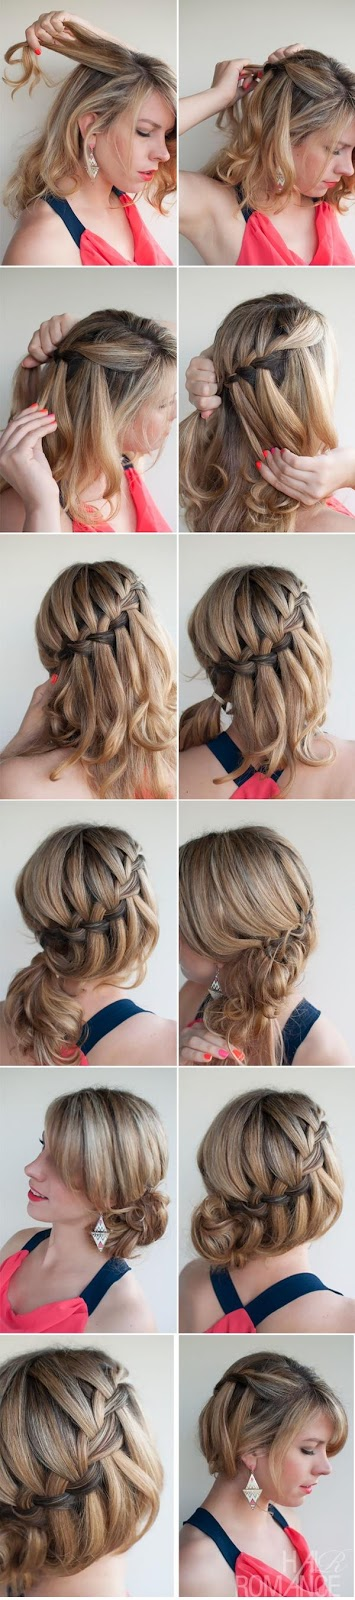 DIY Waterfall Braided Bun Hairstyle via